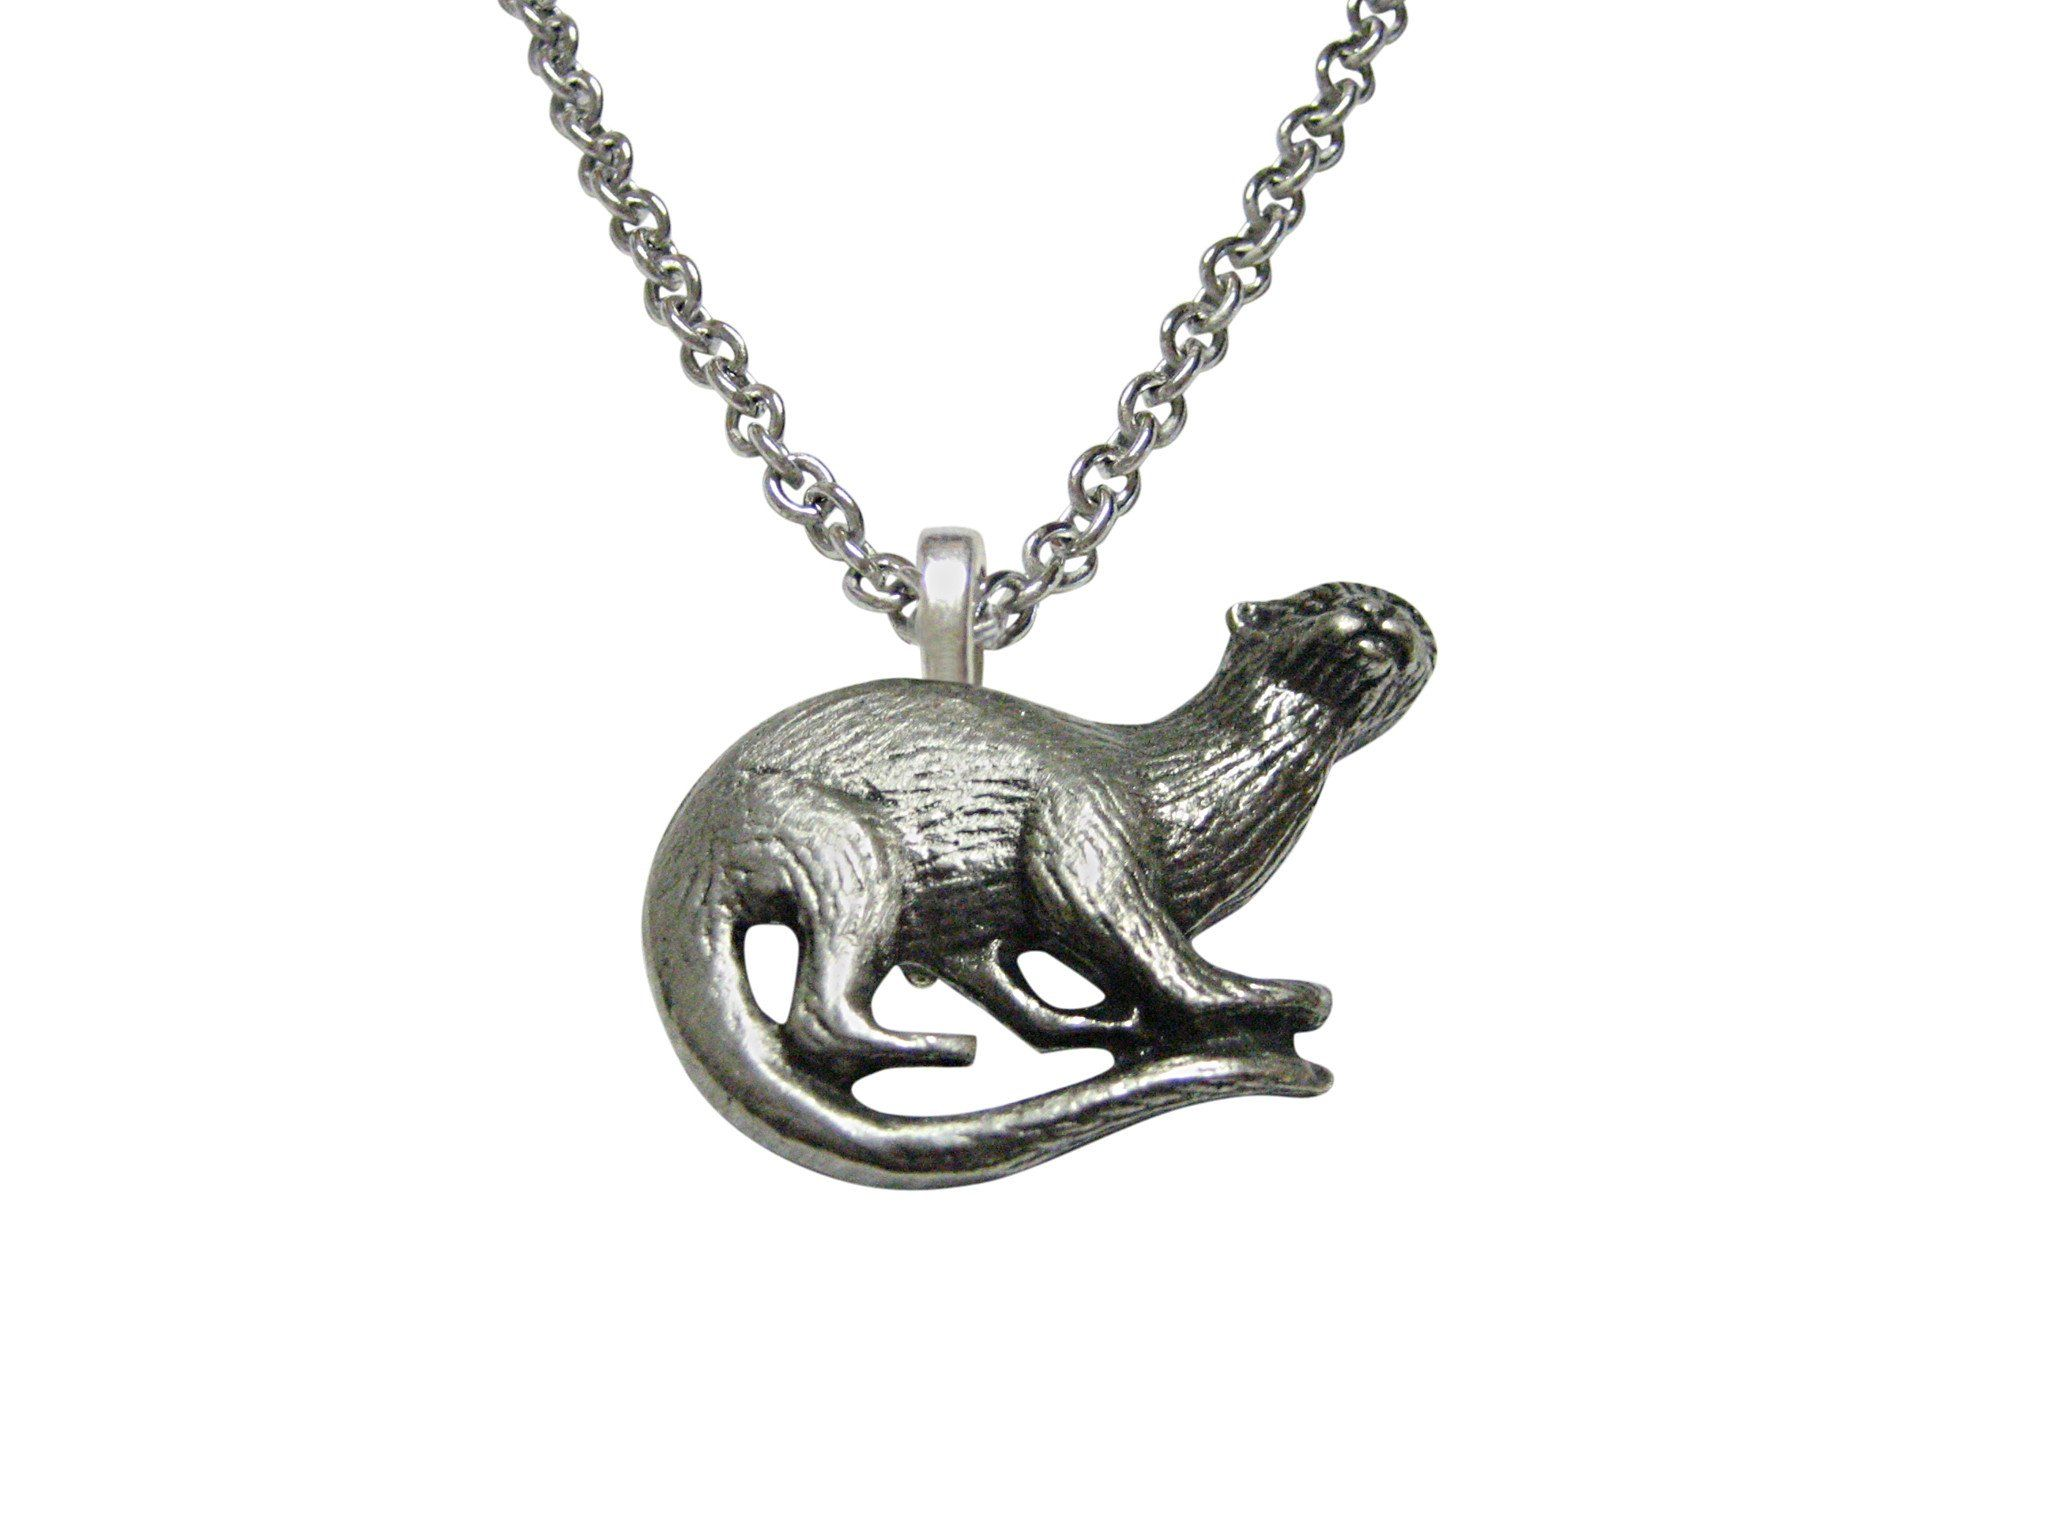 Toned otter pendant necklace silver toned otter pendant necklace aloadofball Image collections